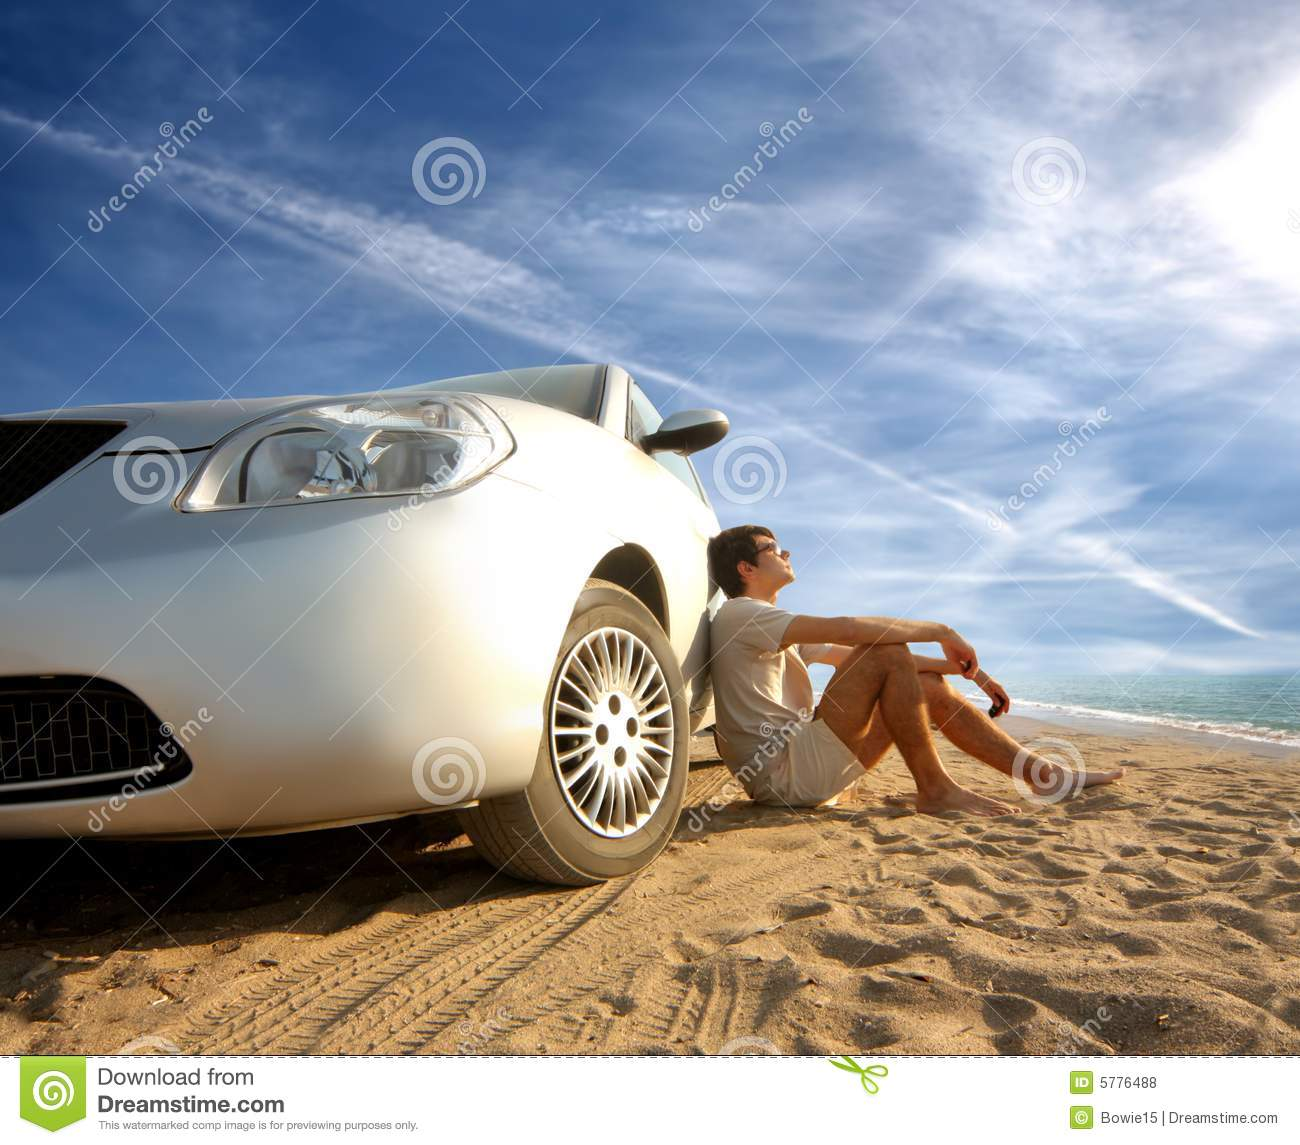 car on the beach royalty free stock photos image 5776488. Black Bedroom Furniture Sets. Home Design Ideas